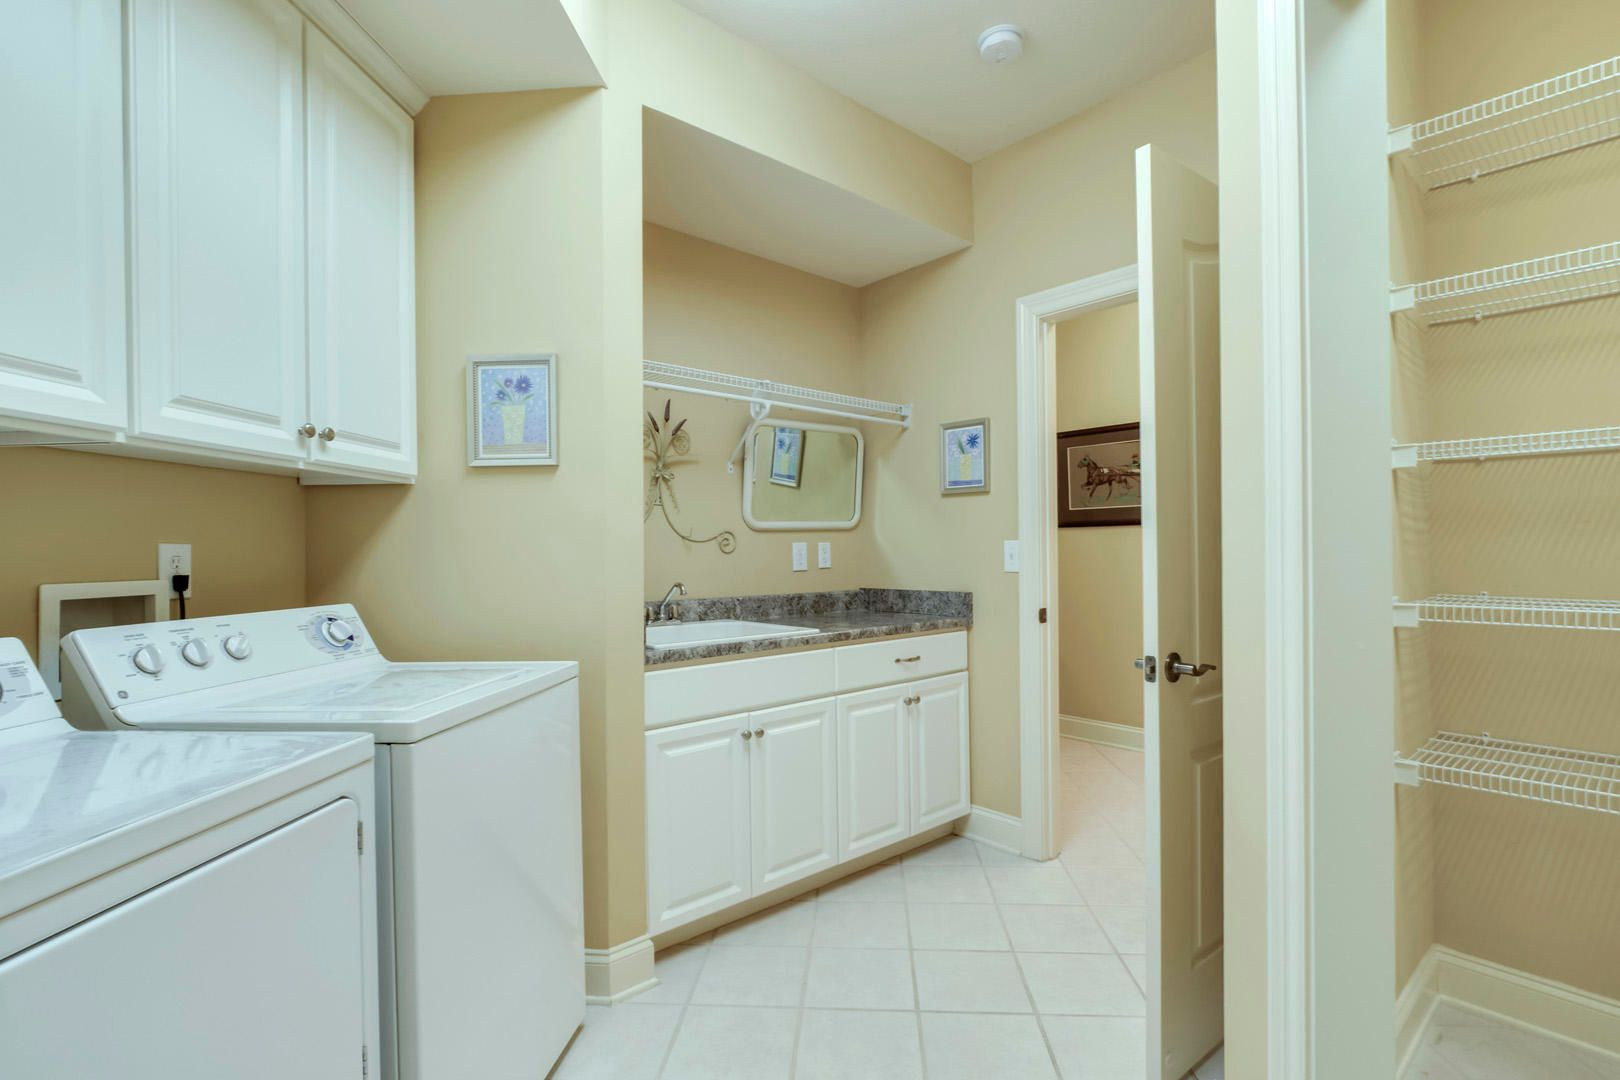 22_GreenfinchDrive_104_Laundry02